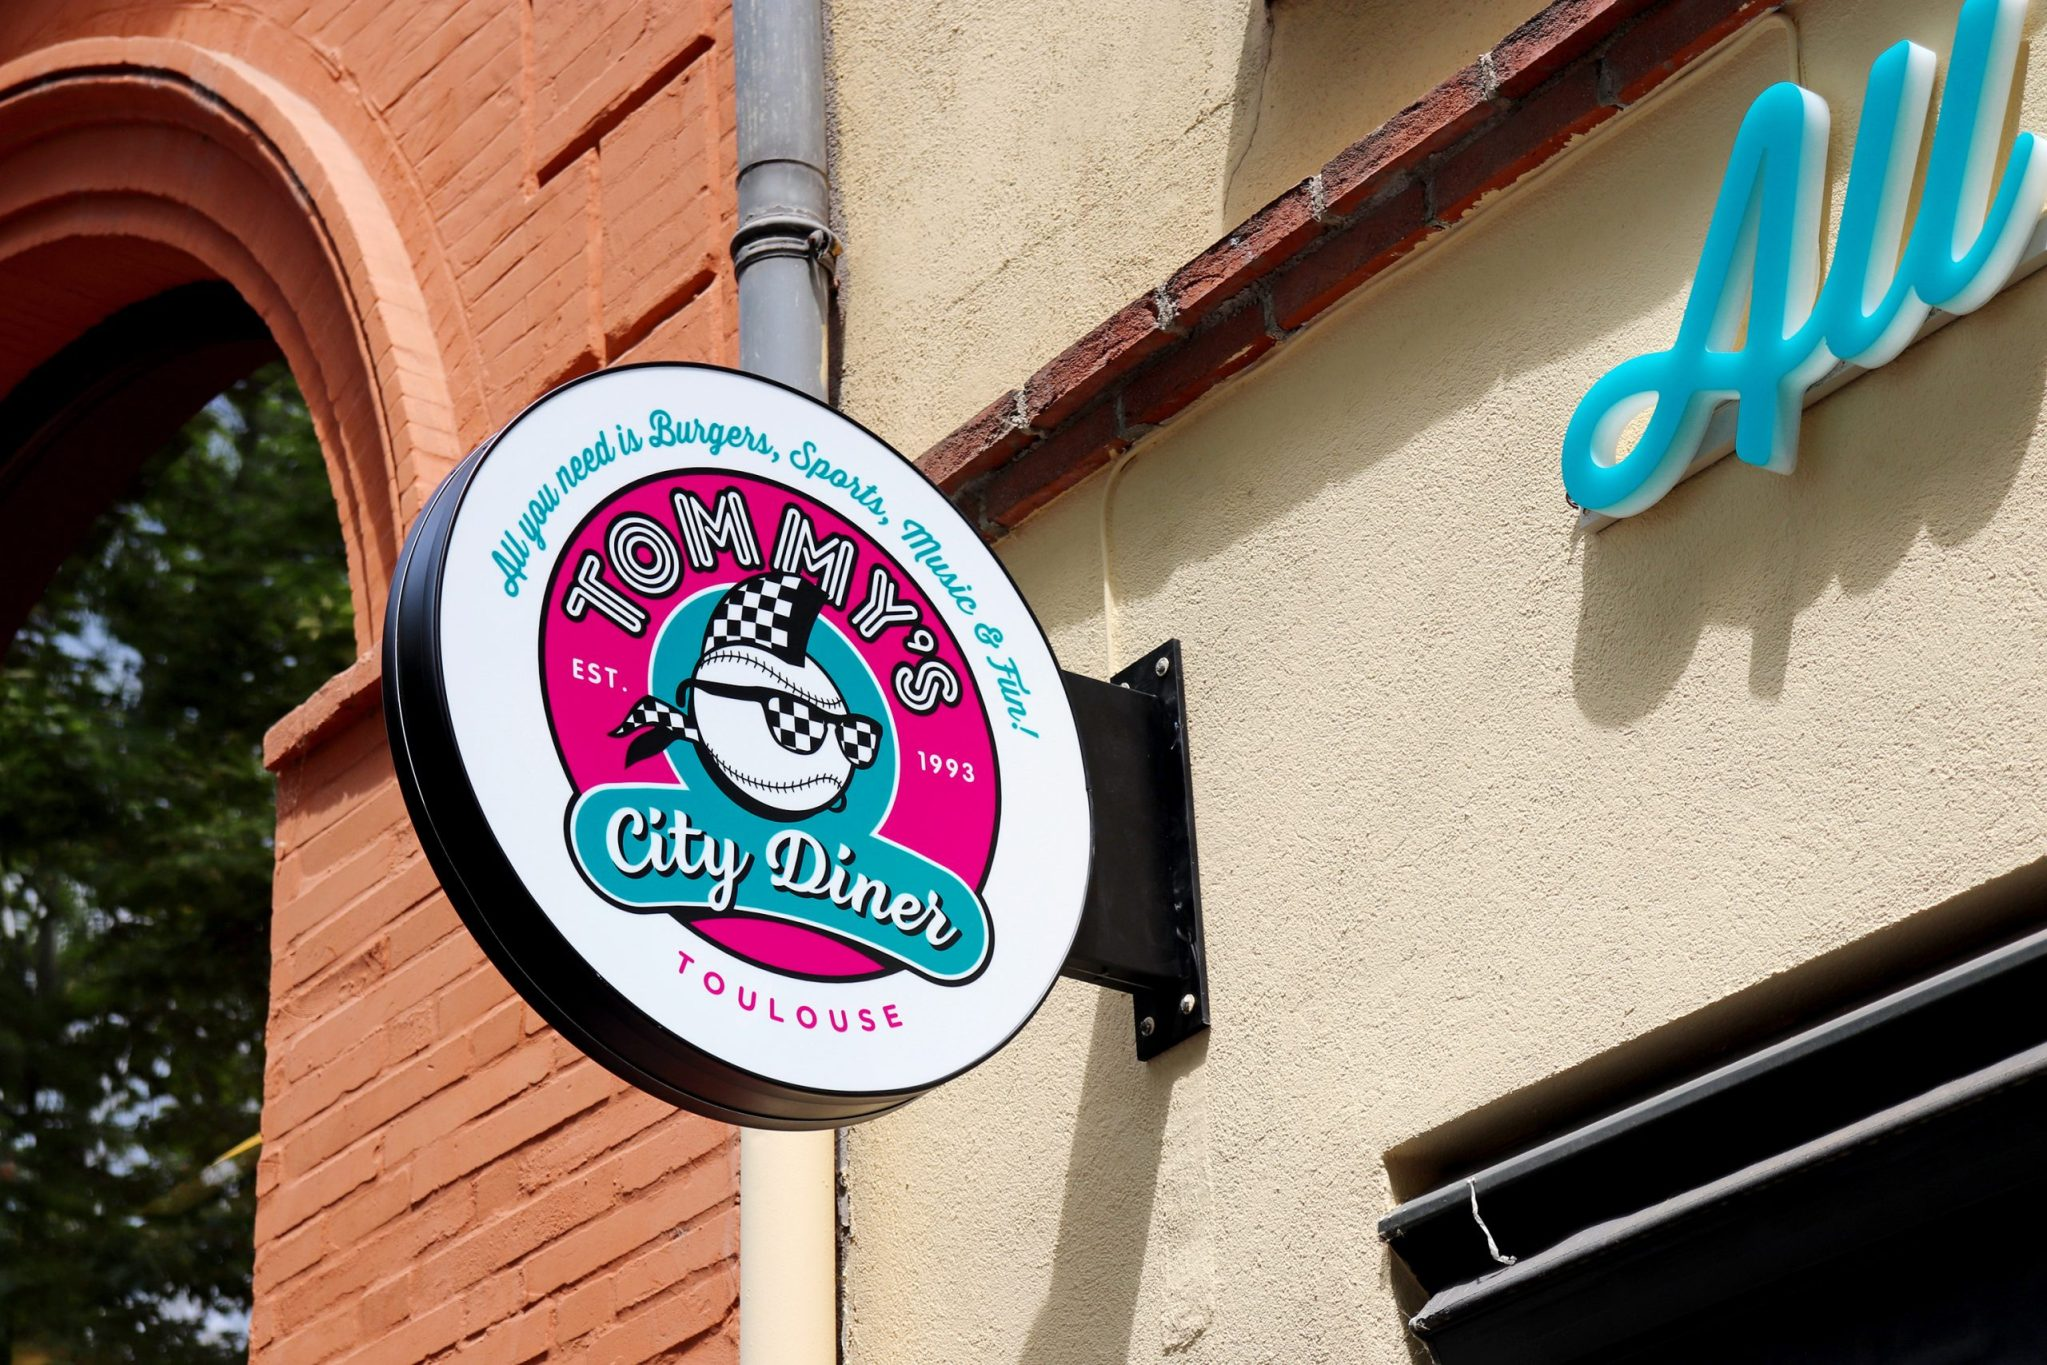 News Tommy's City Diner Toulouse